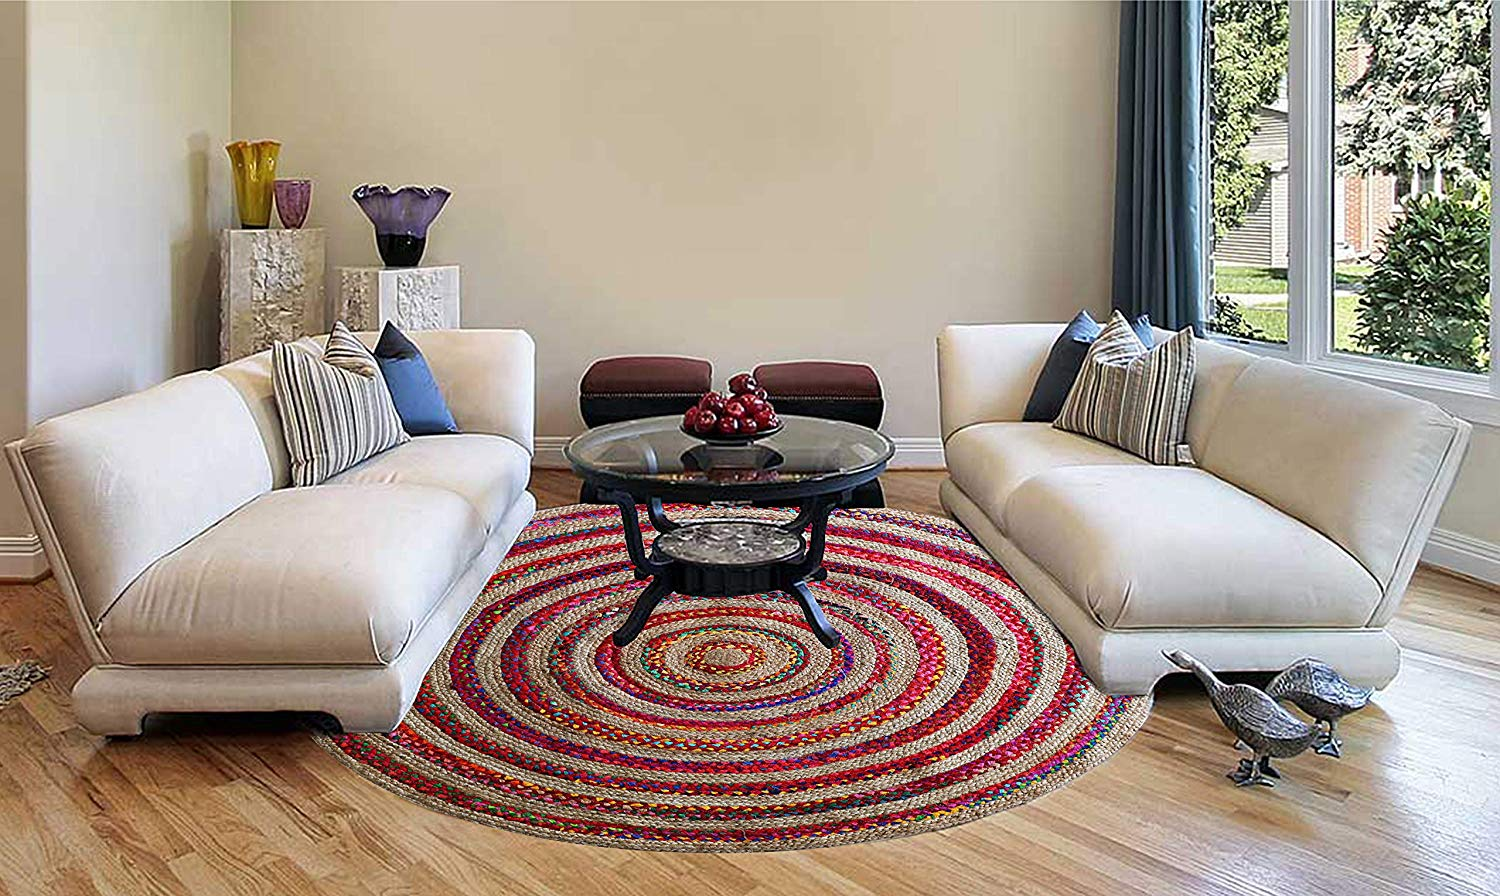 Cotton and Jute Braided Multicolor Chindi Floor Rug - BohoEntice